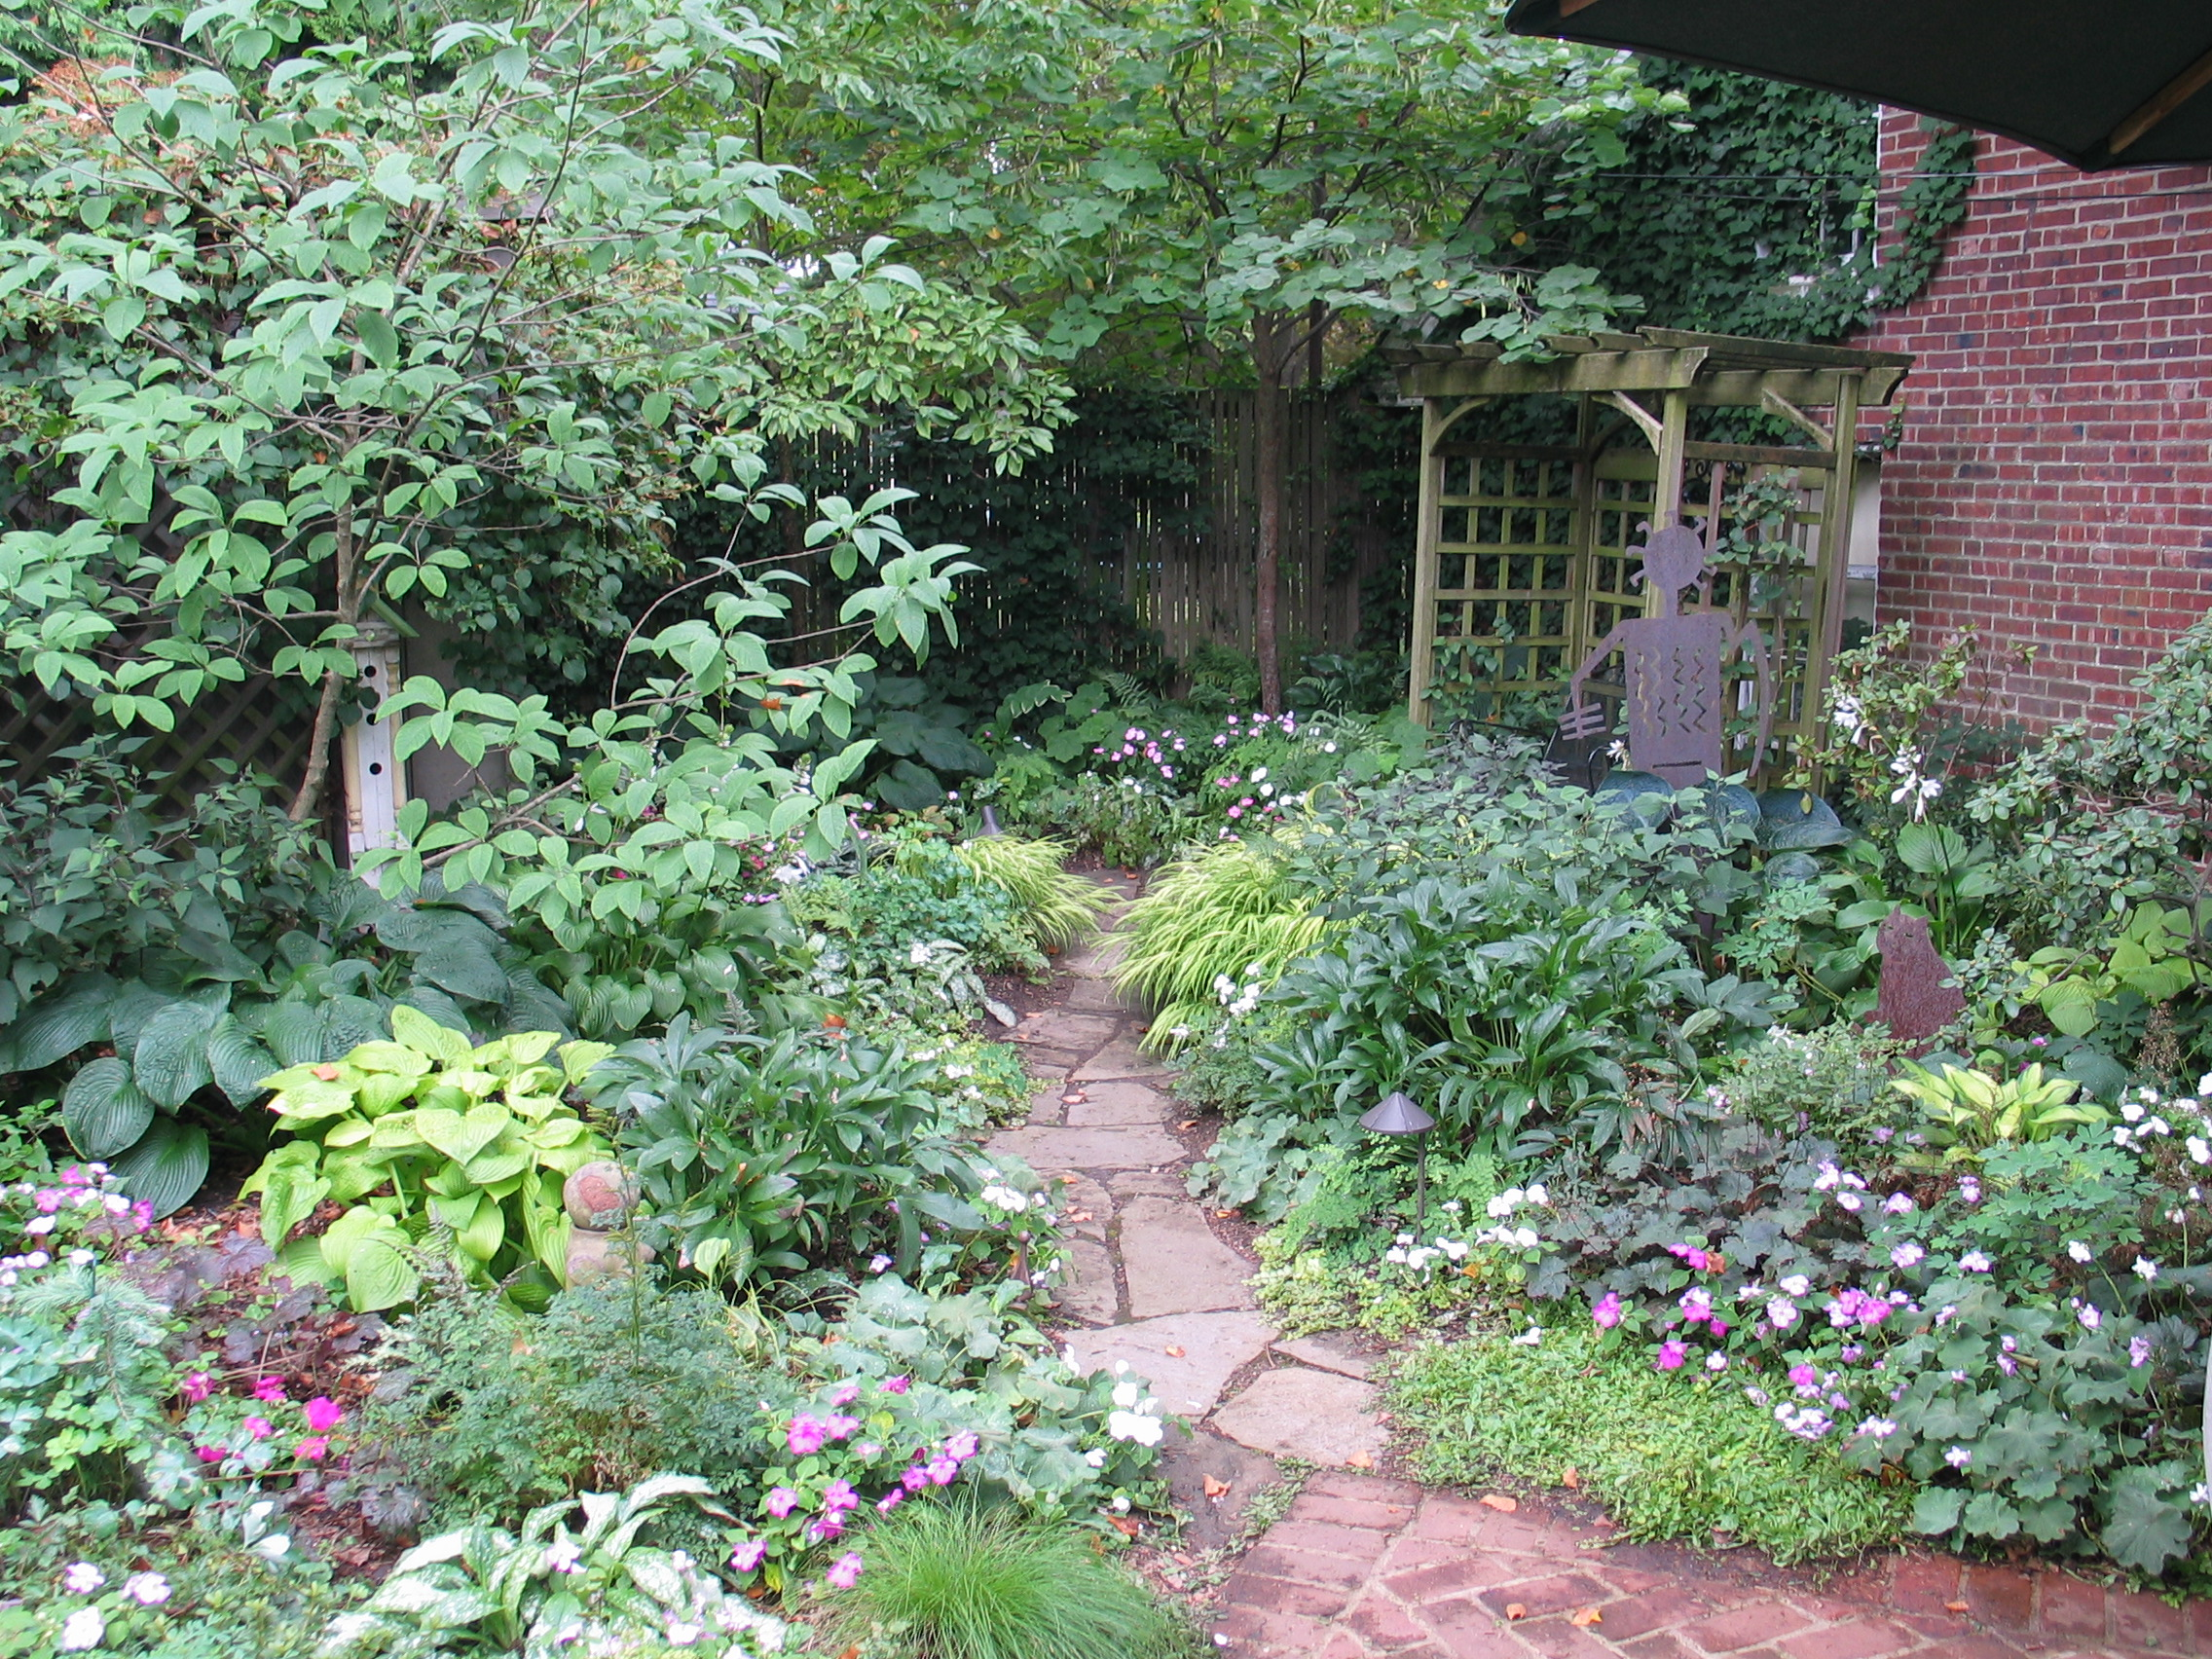 Cottage Gardens: With A Love For The English Garden